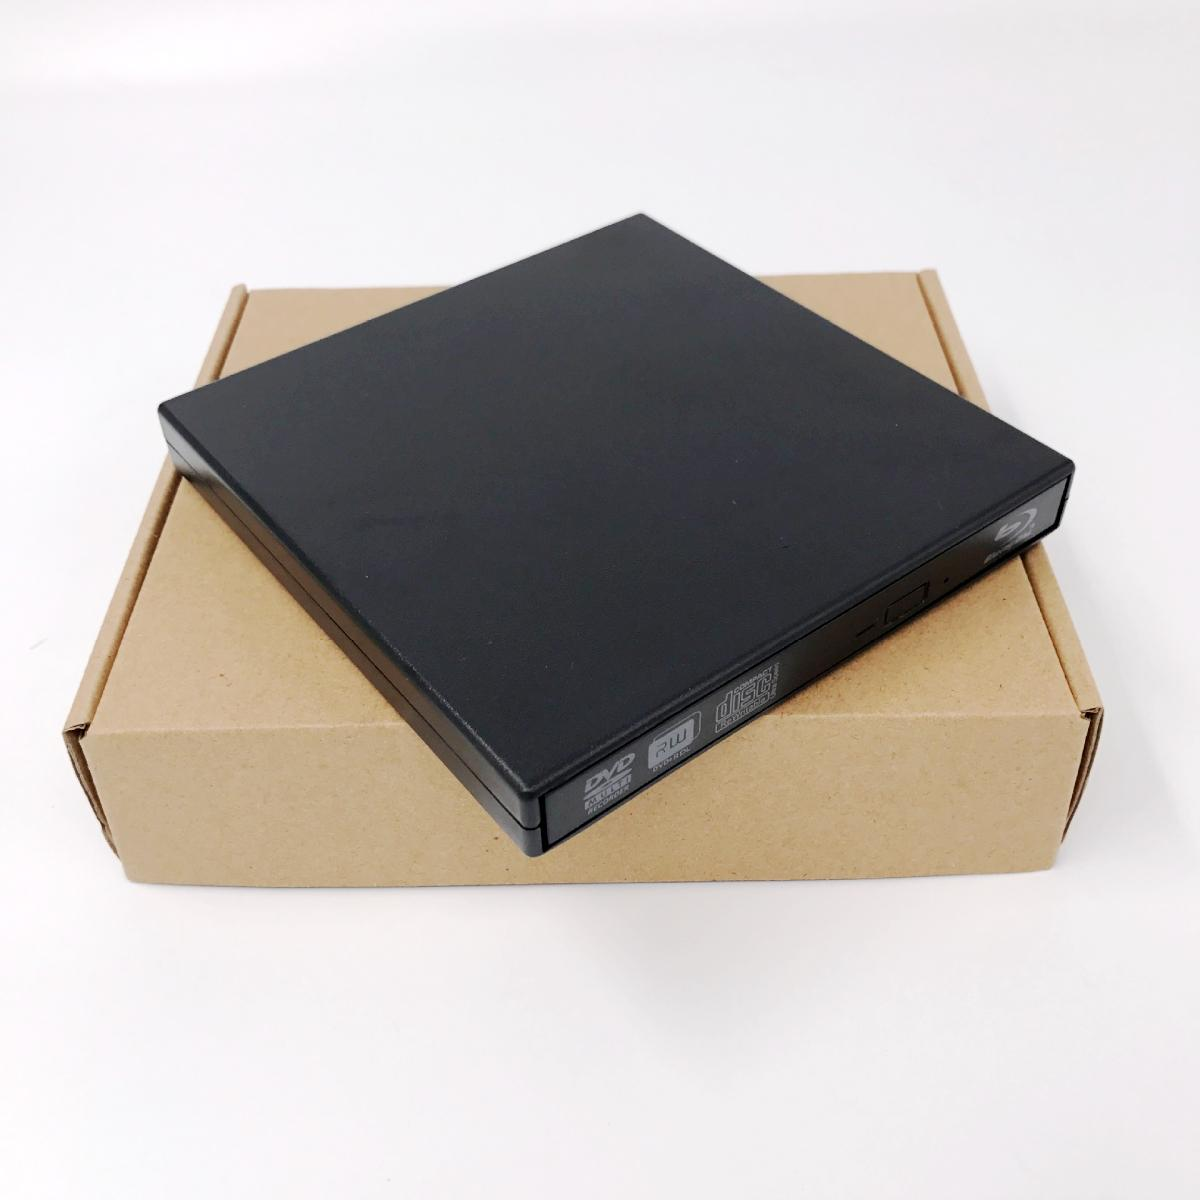 Black slim USB 2.0 External BD Blu Ray DVD RW DVD DL CD RW Drive Writer Burner For WINDOWS XP/7/8/10 Mac Desktop Laptop bluray player external usb 3 0 dvd drive blu ray 3d 25g 50g bd rom cd dvd rw burner writer recorder for windows 10 mac os linux